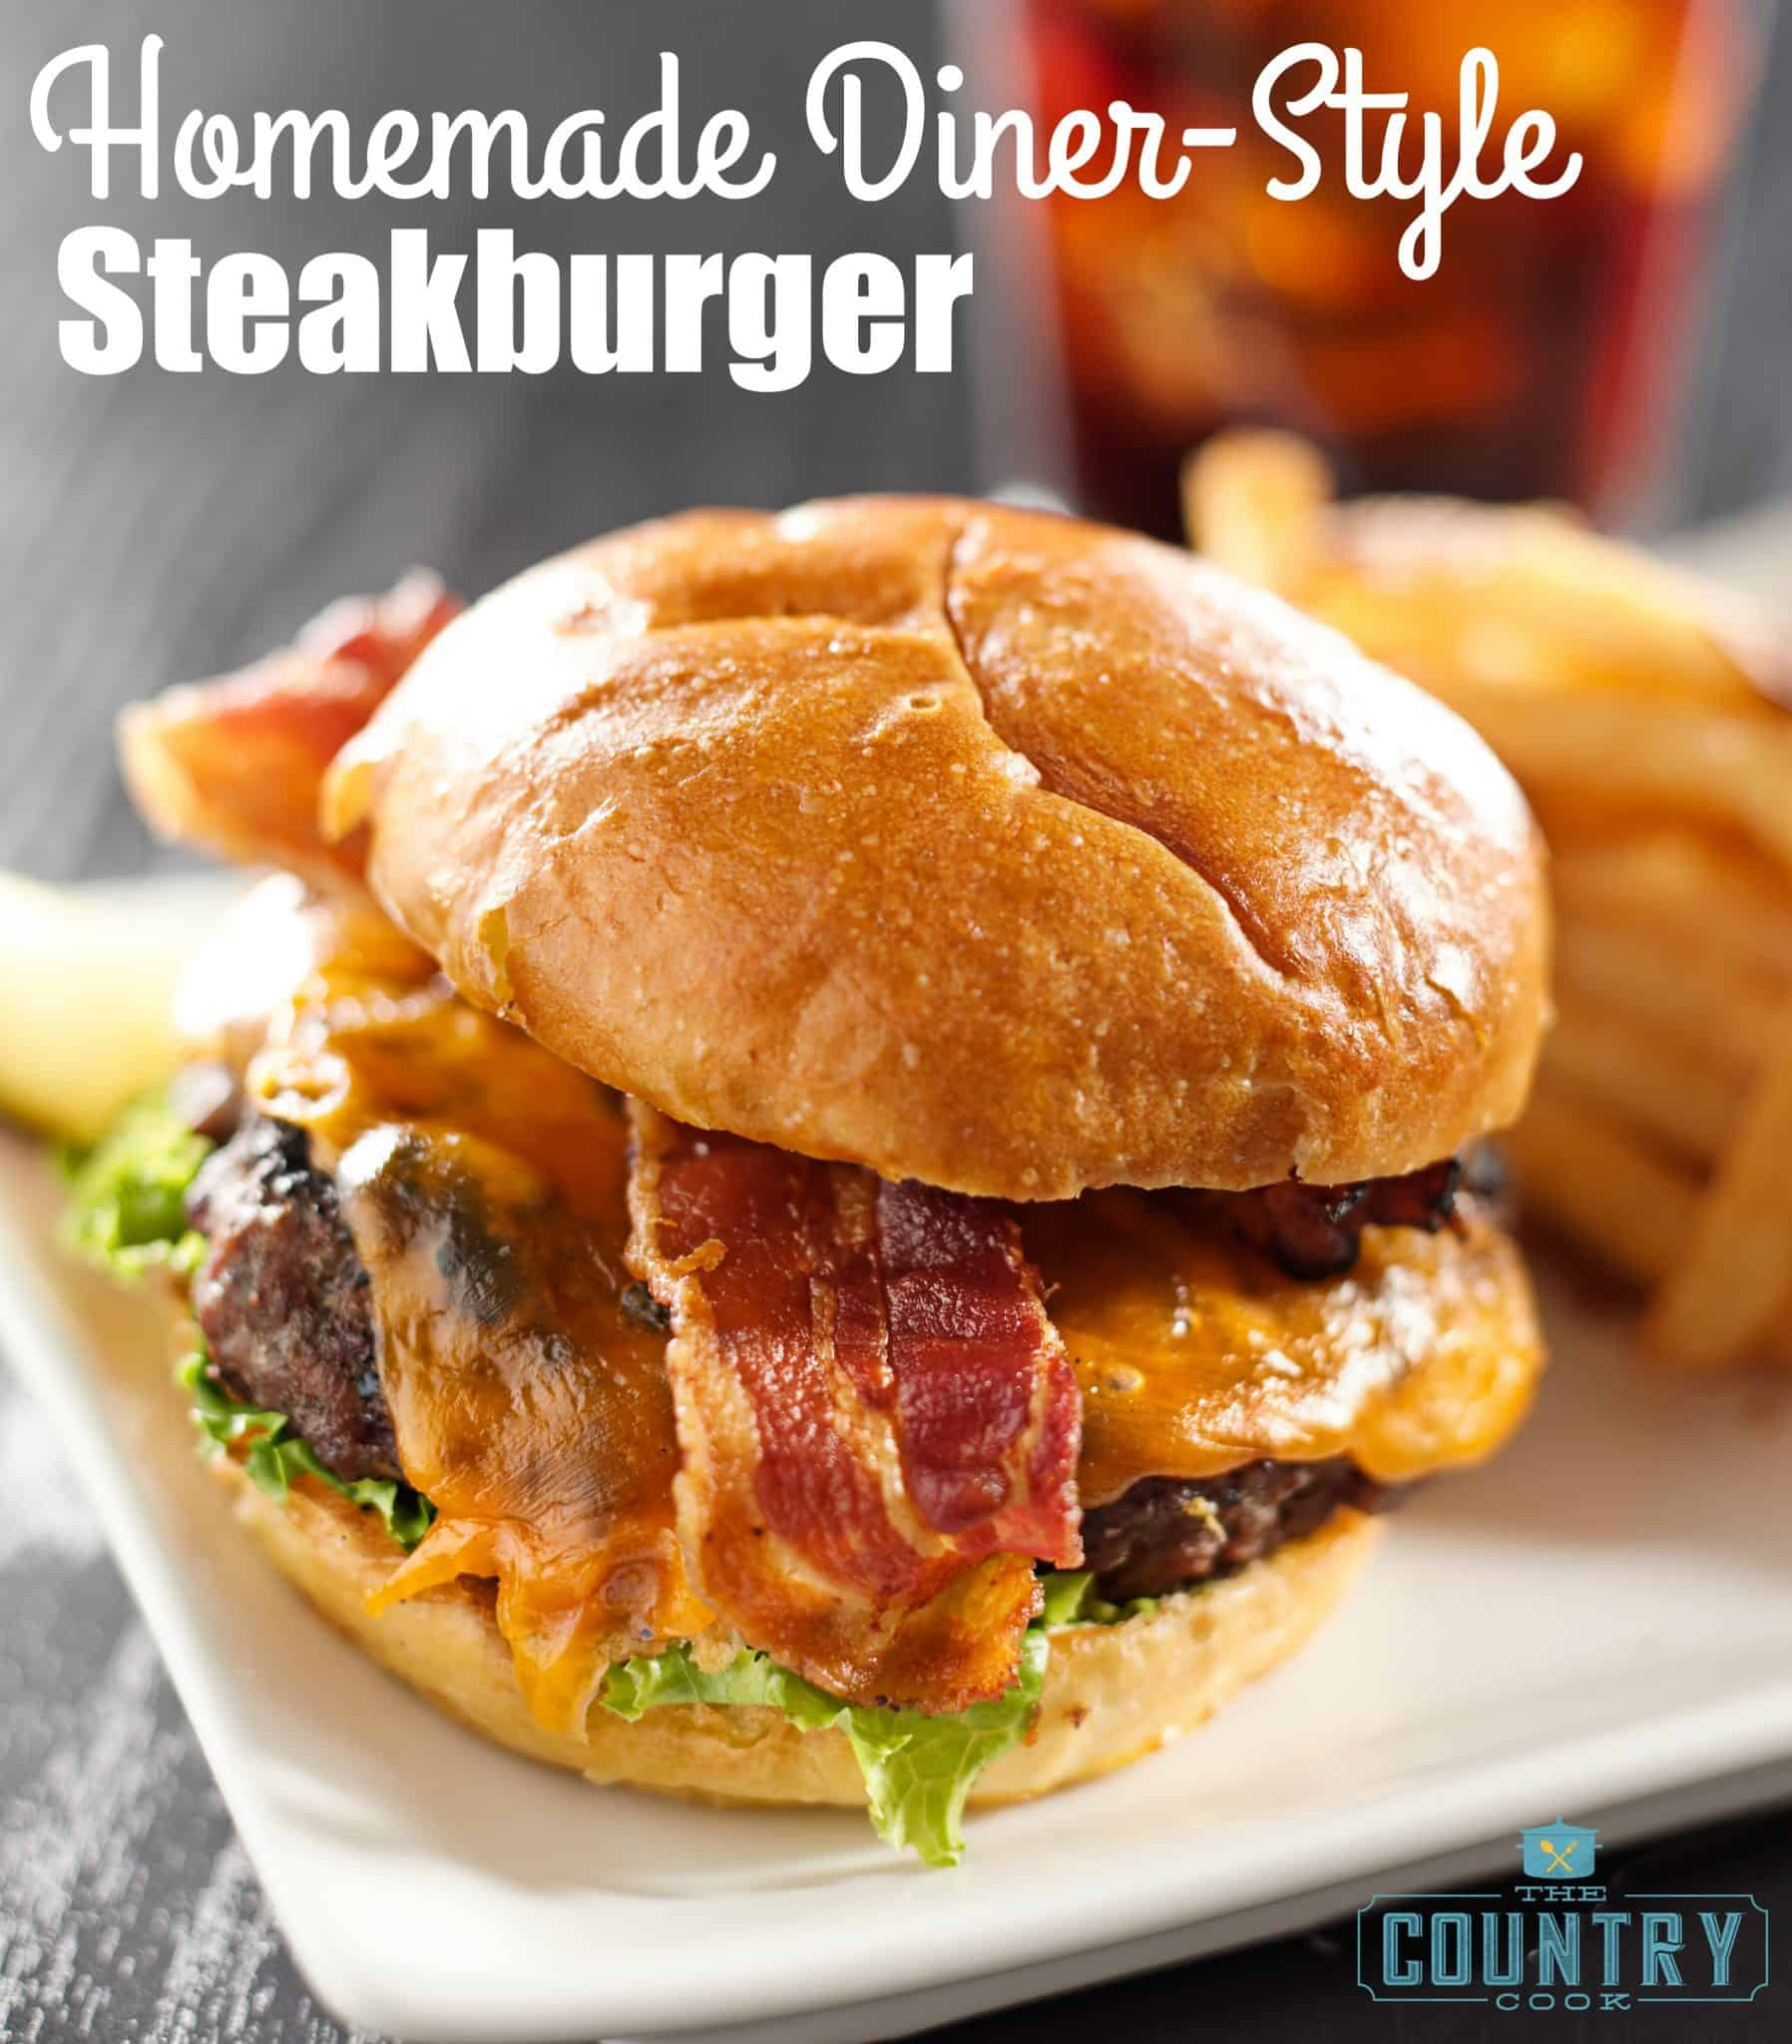 Homemade Steakburger - The Country Cook